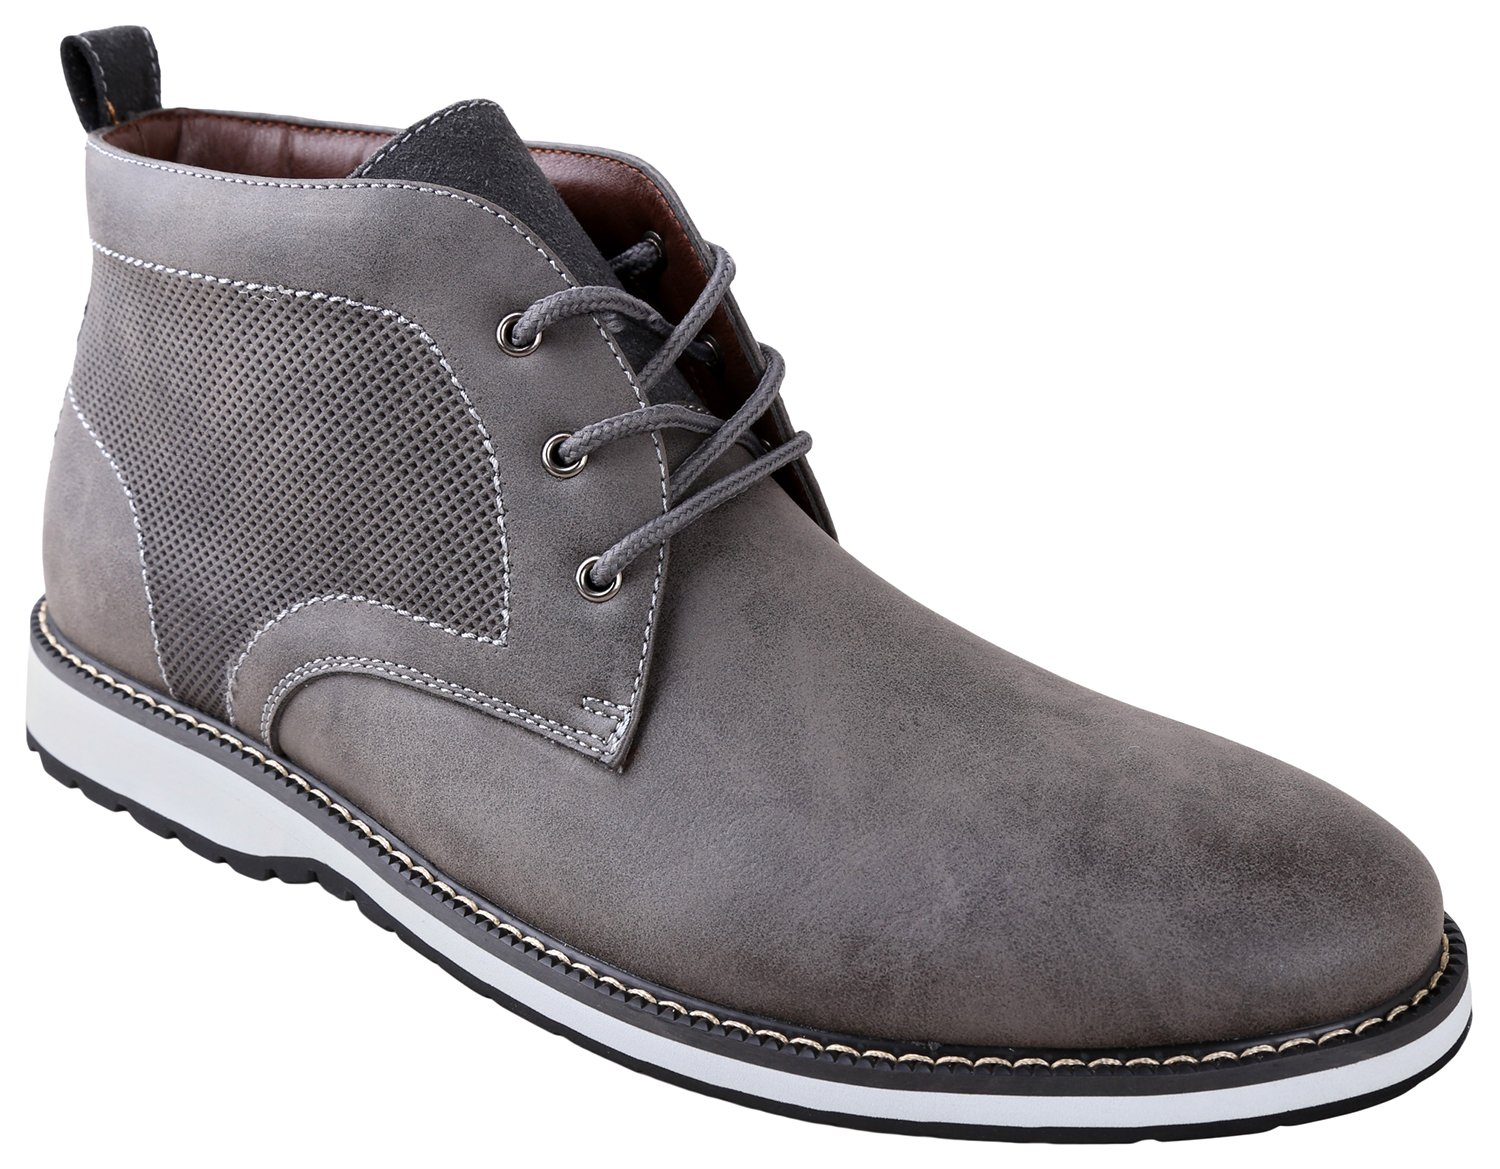 Ferro Aldo Men's Denver Ankle Boots | Lace up | Mens Boots Fashion | Casual Fashion | Chukka Boots Men | Grey/White Sole 13